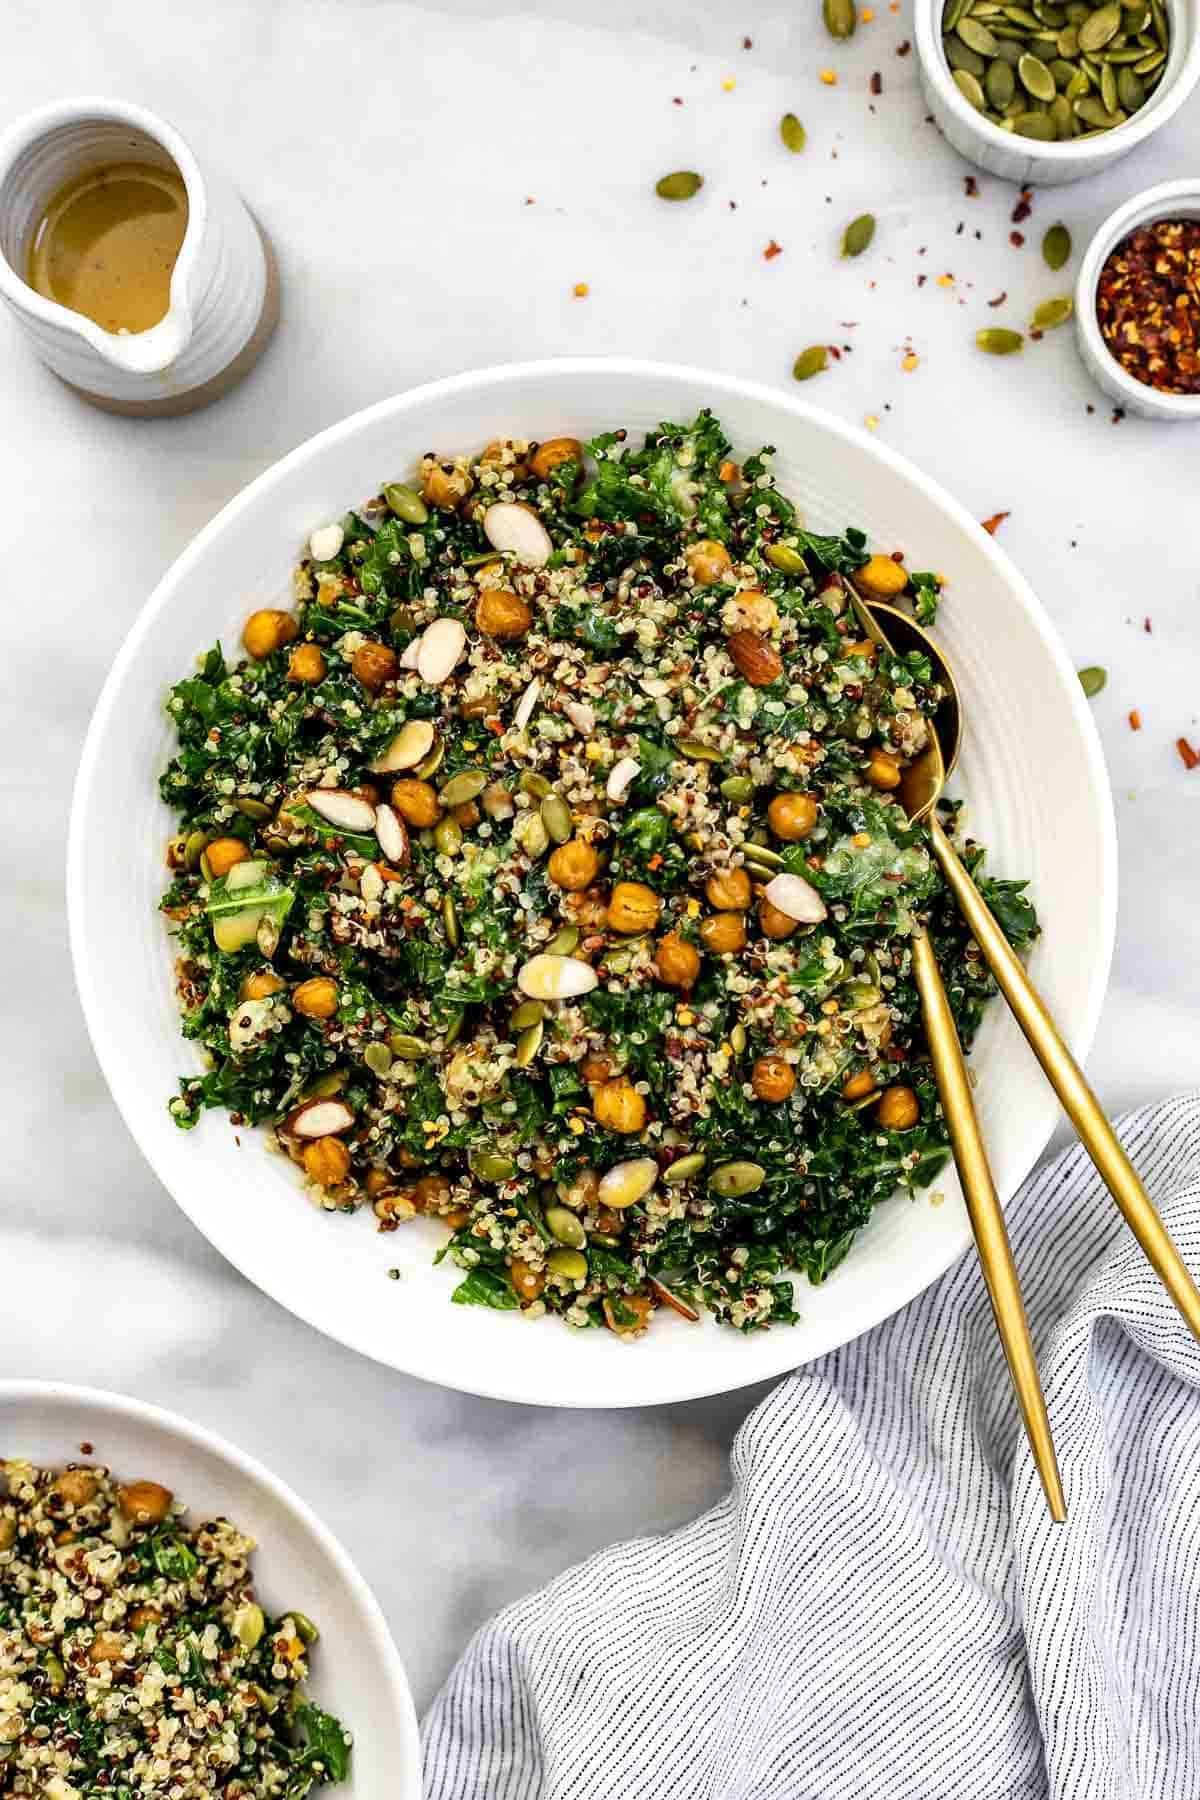 Kale quinoa salad in a white bowl with a stripped towel.